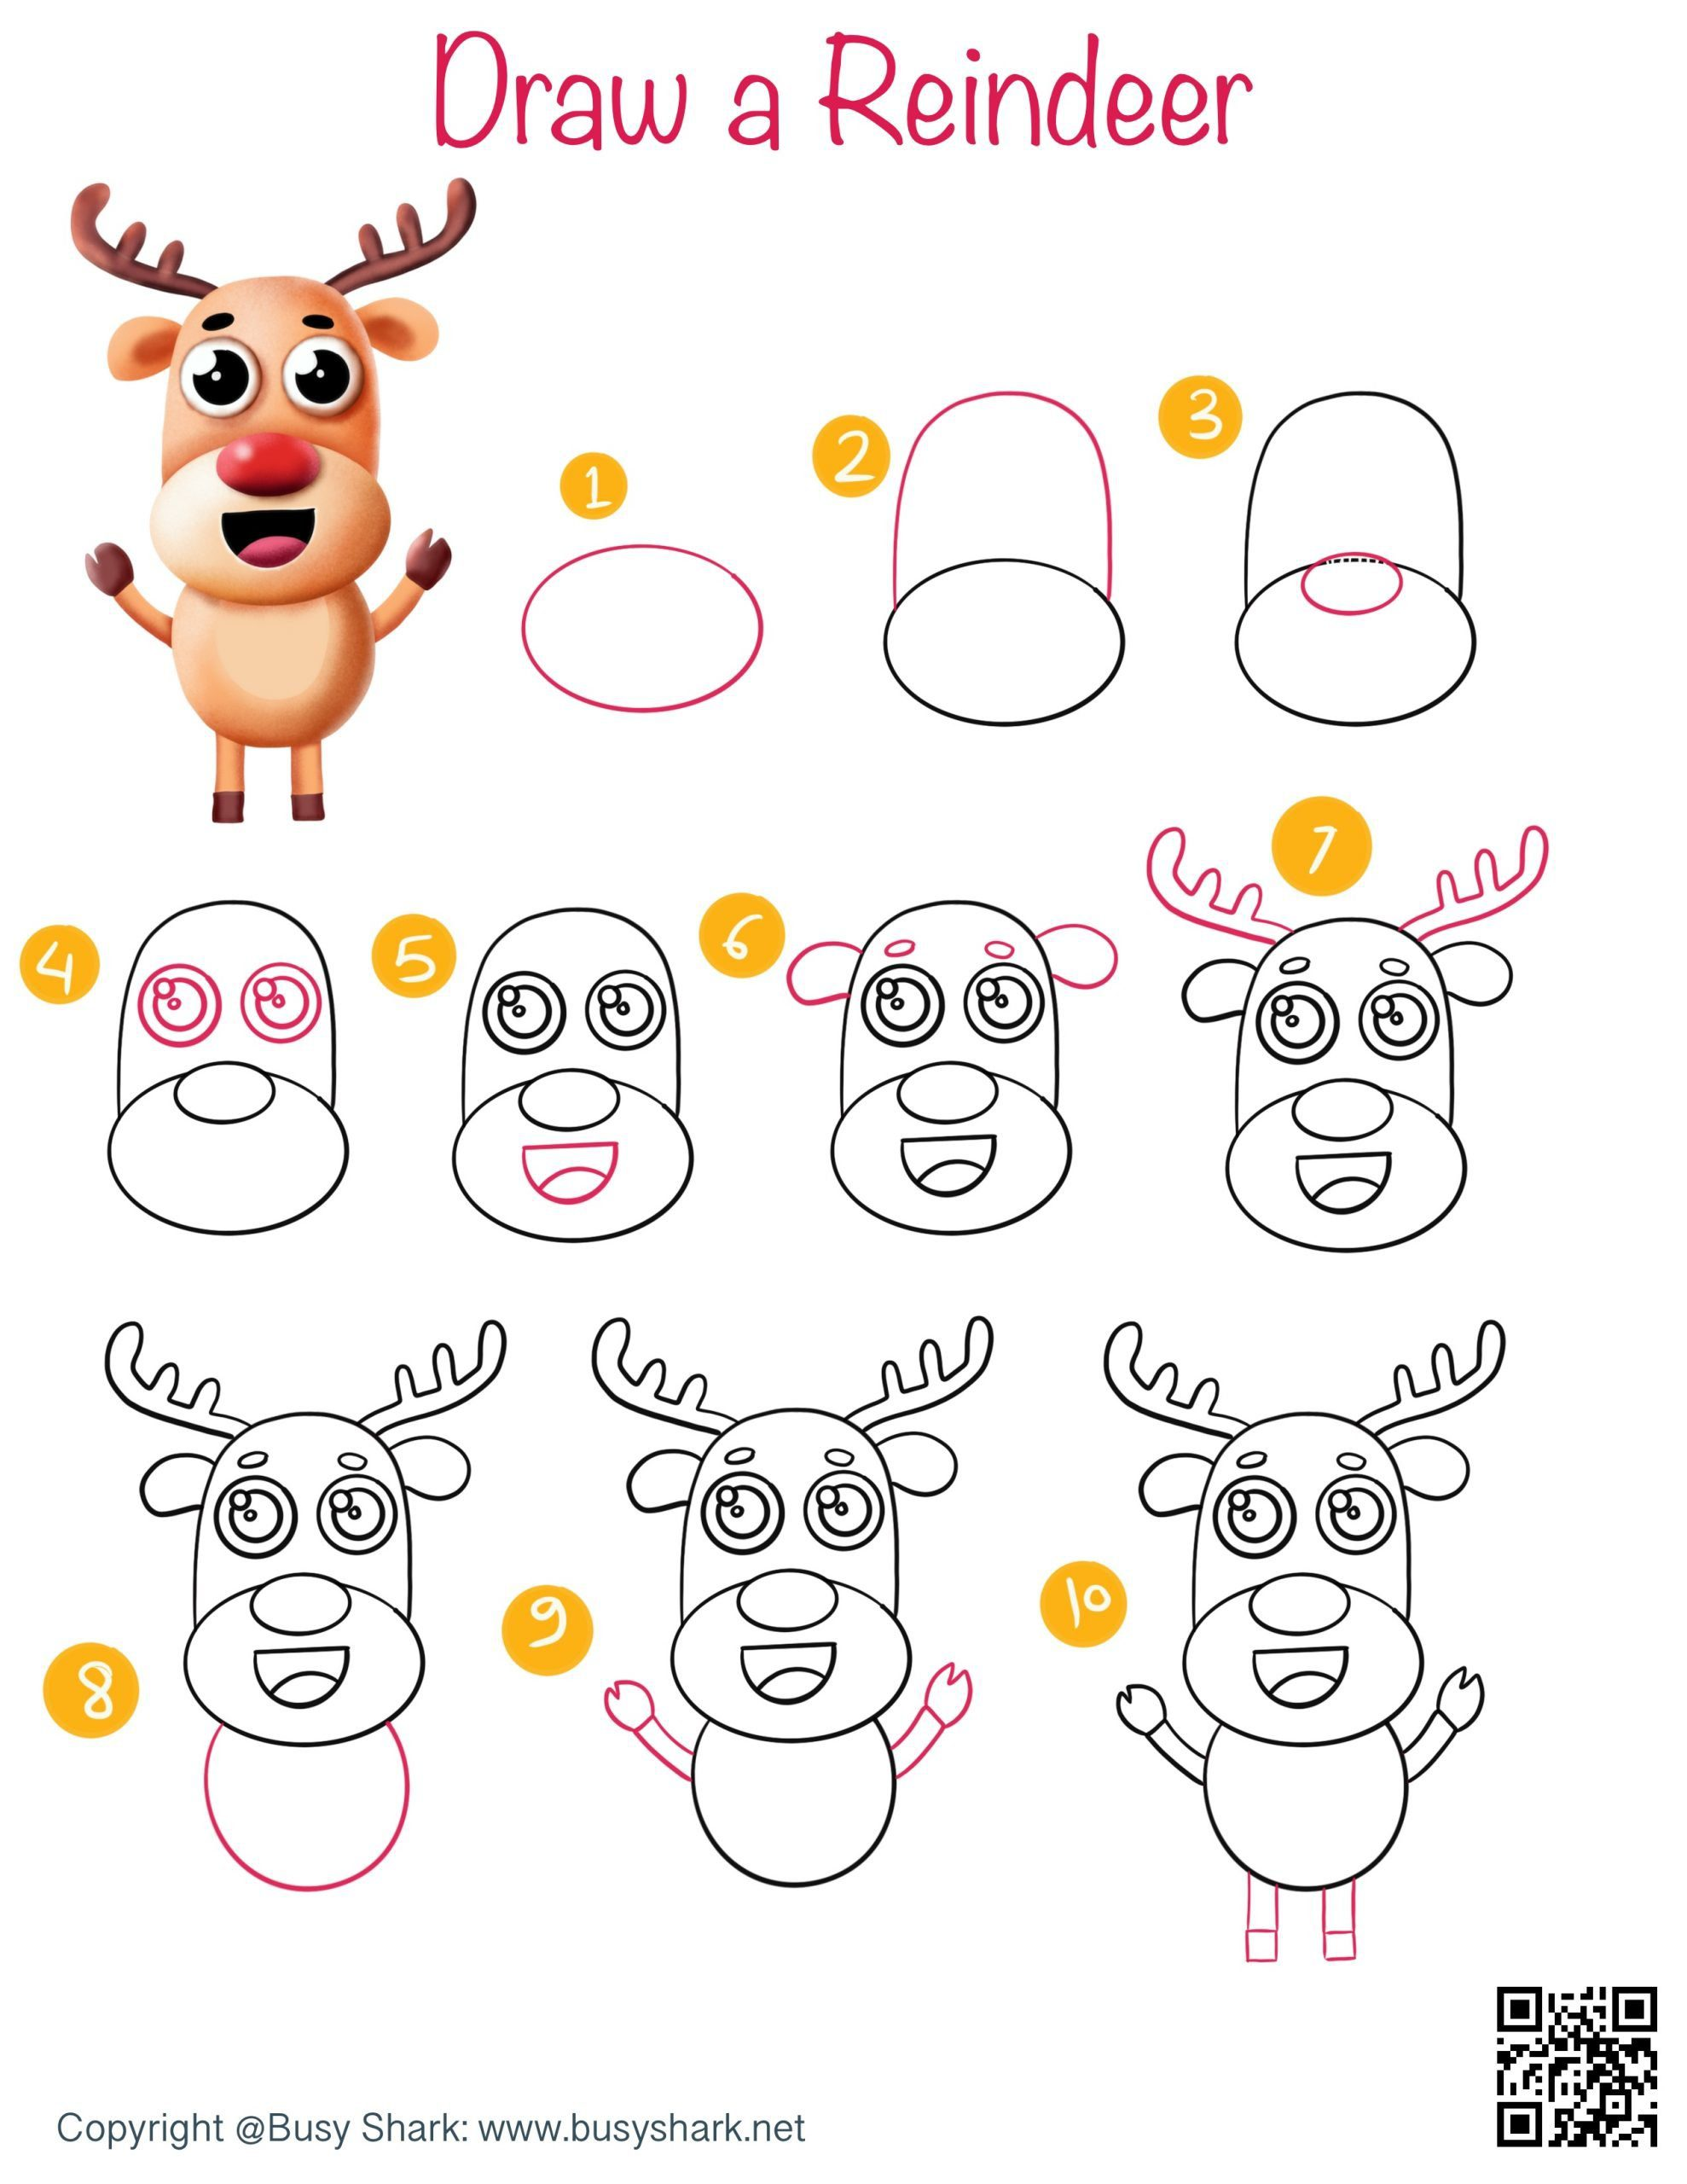 How to draw a reindeer step by step tutorial , cute and easy cartoon drawing for kids